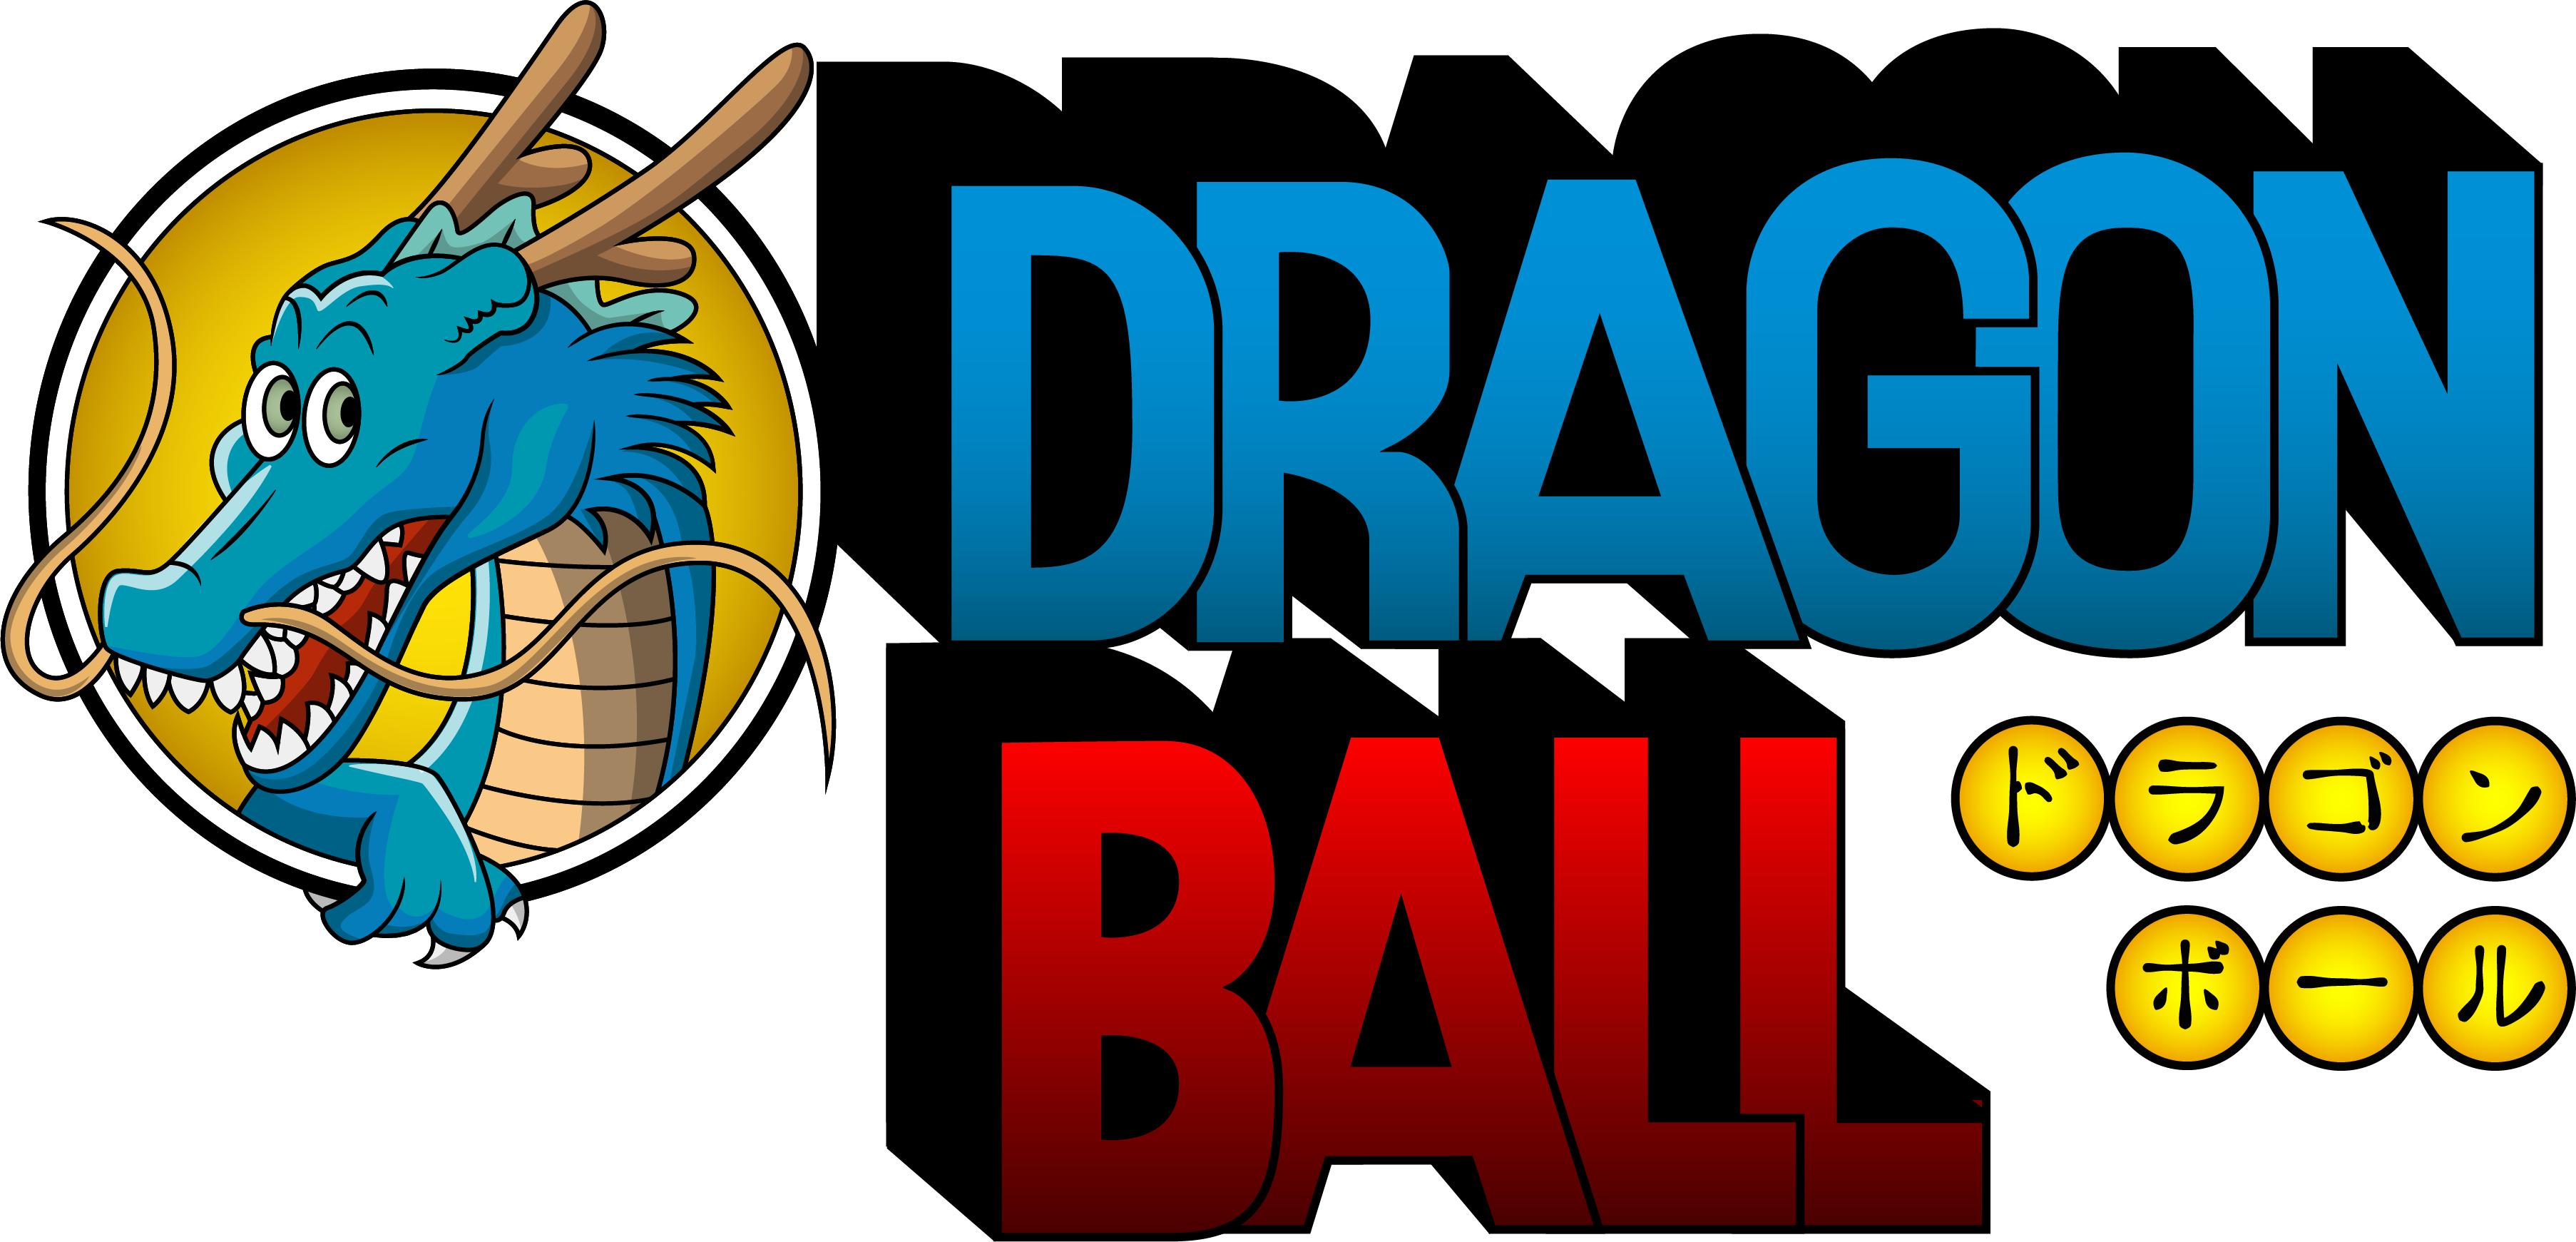 Dragon Nall Z Logo Google Search I Love This One The Different Colors Makes It Unique I Like How The Dragon Ball Is Incorpo Cartoon Logo Logos Logo Google